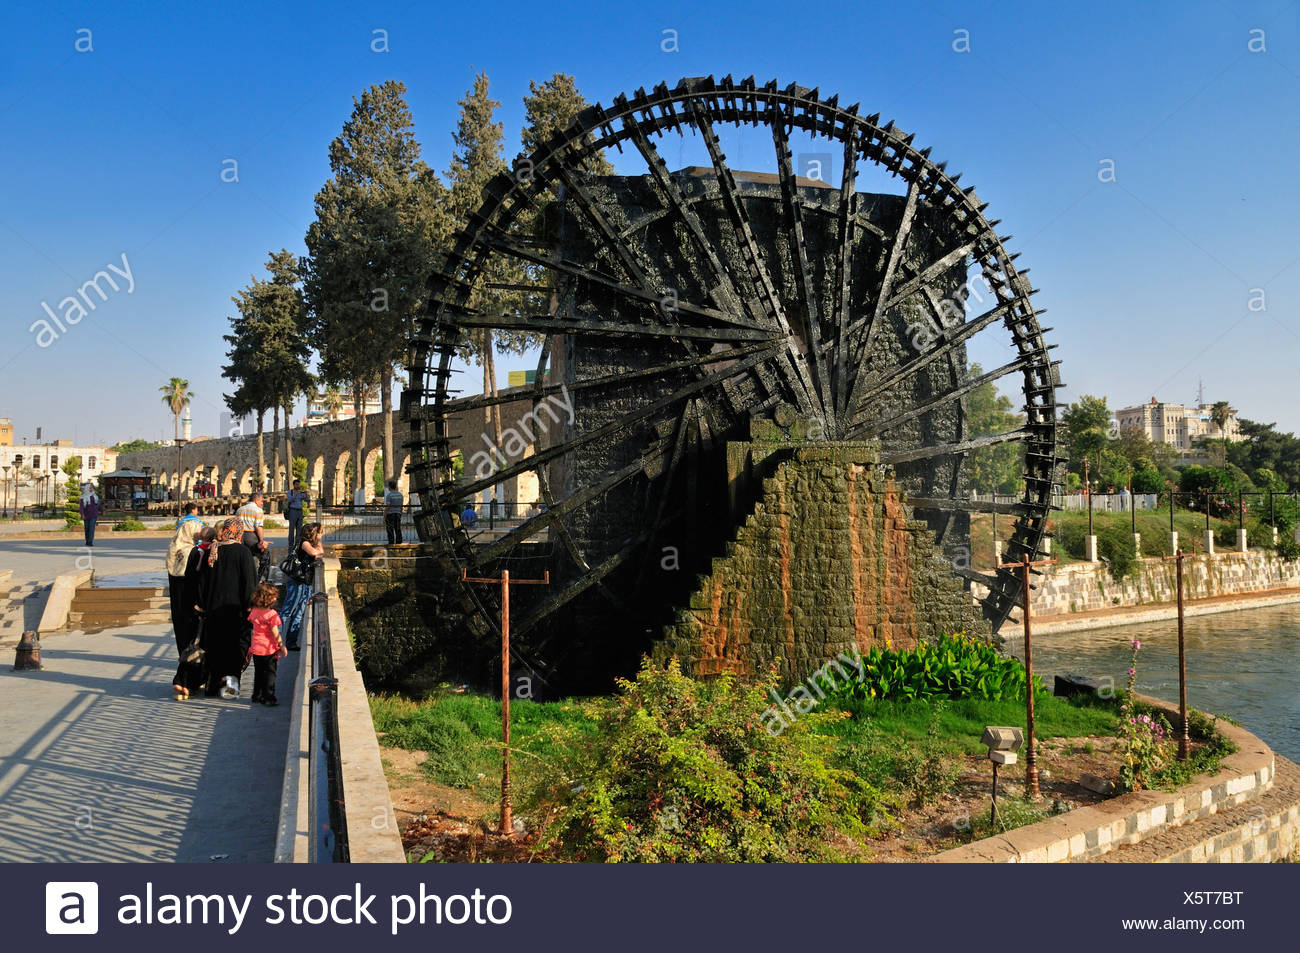 Noria waterwheel on the Orontes River in Hama, Syria, Middle East, West Asia Stock Photo